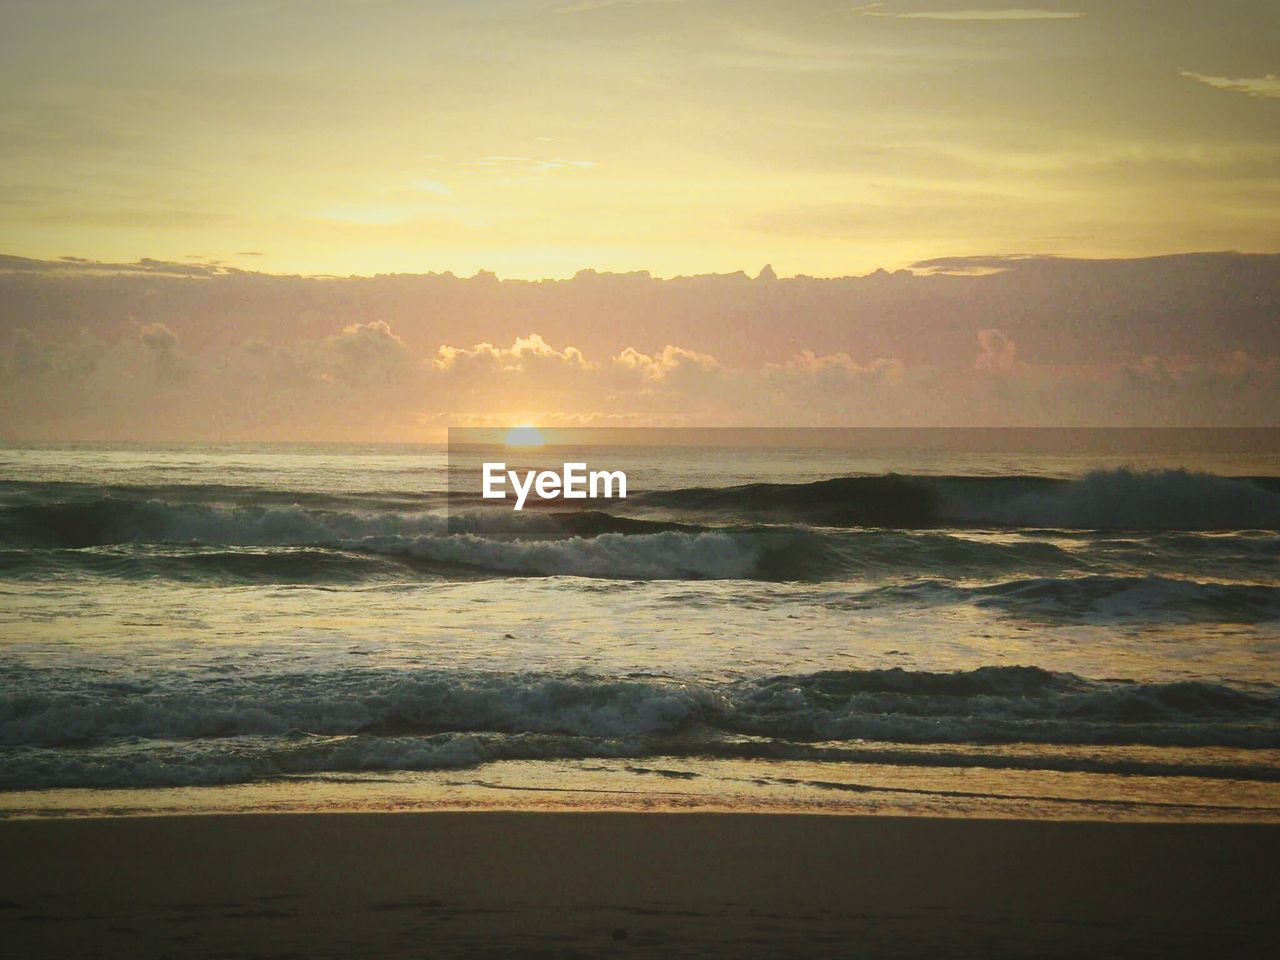 sunset, nature, sea, beauty in nature, water, scenics, wave, no people, tranquility, tranquil scene, outdoors, sky, beach, day